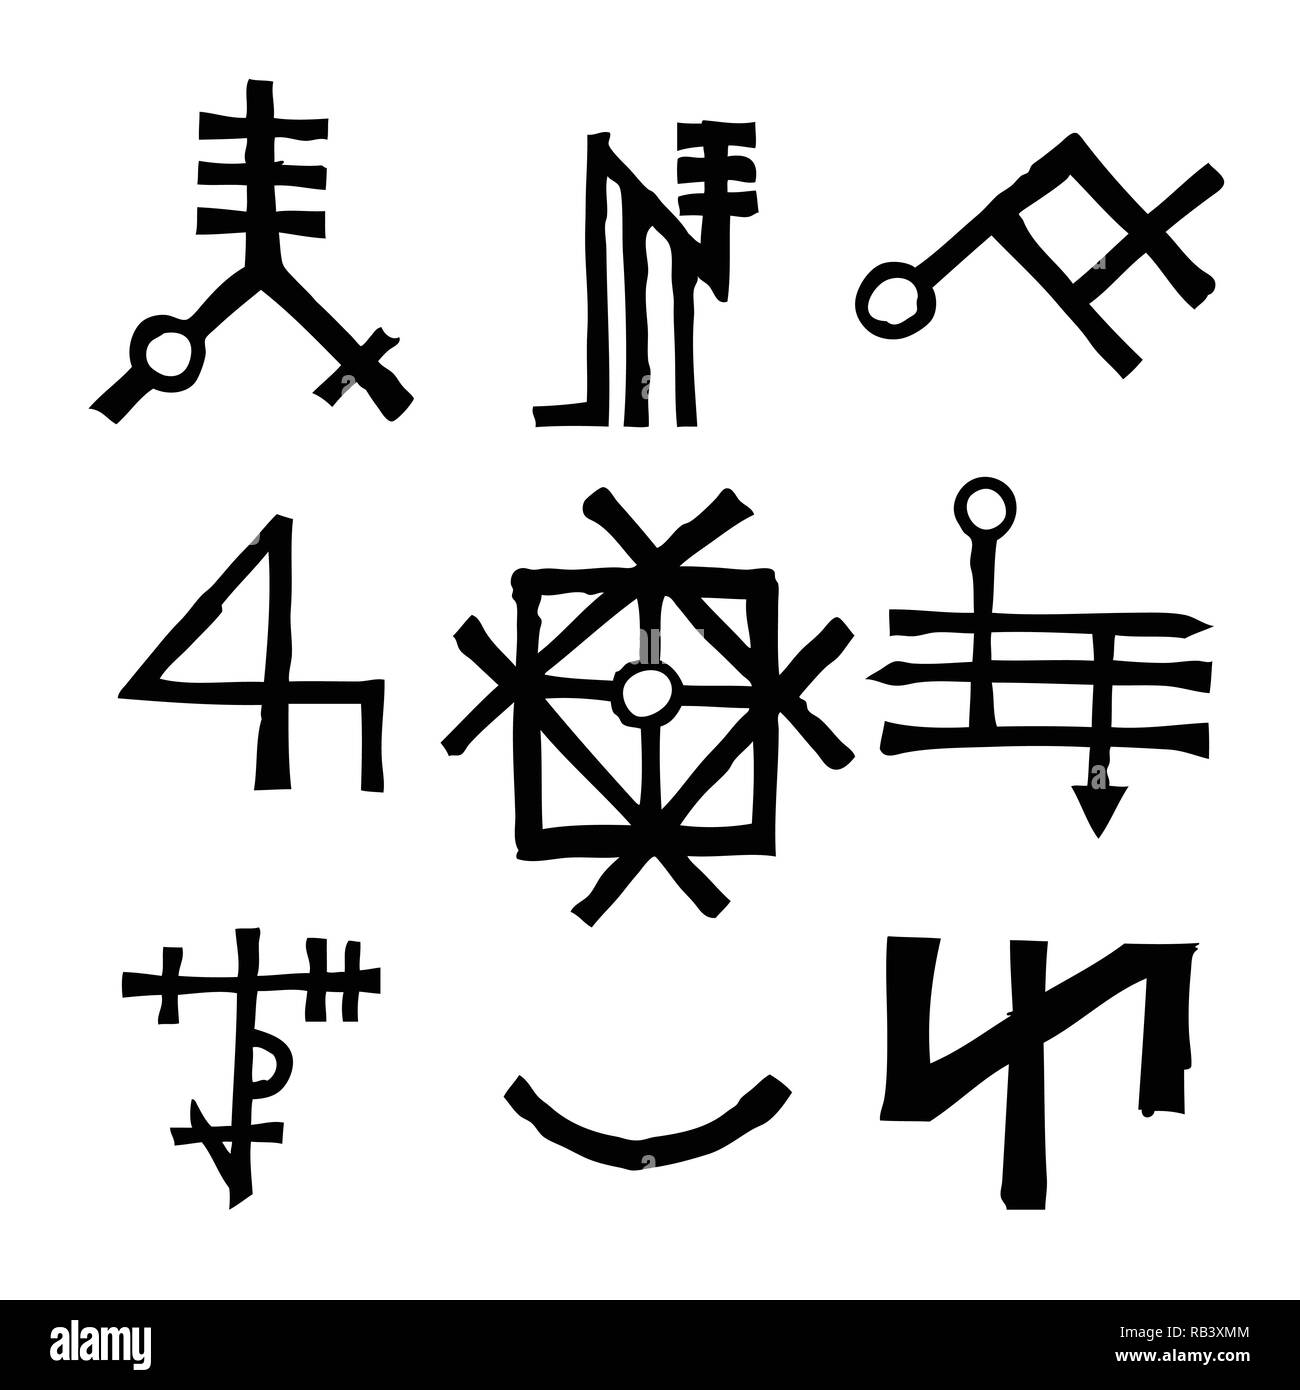 Set of Old Norse Scandinavian runes imaginary version. Runic alphabet symbols, futhark. Inspired by ancient occult symbols, vikings letters and runes. - Stock Image